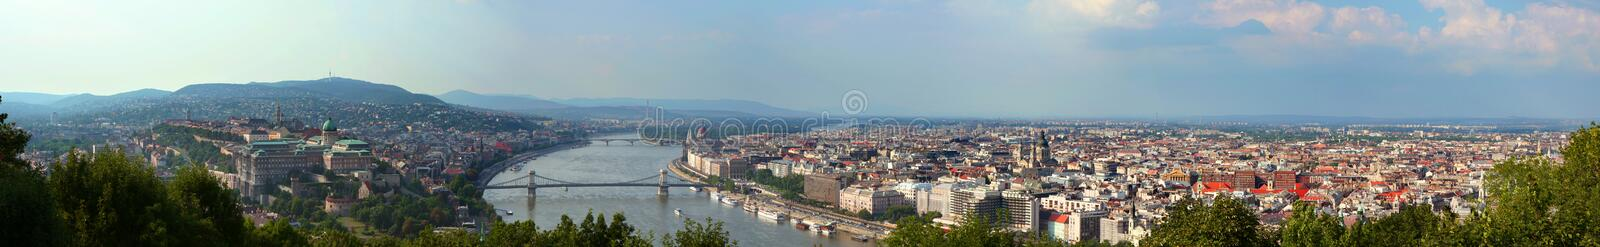 Budapest Panorama Stock Photos